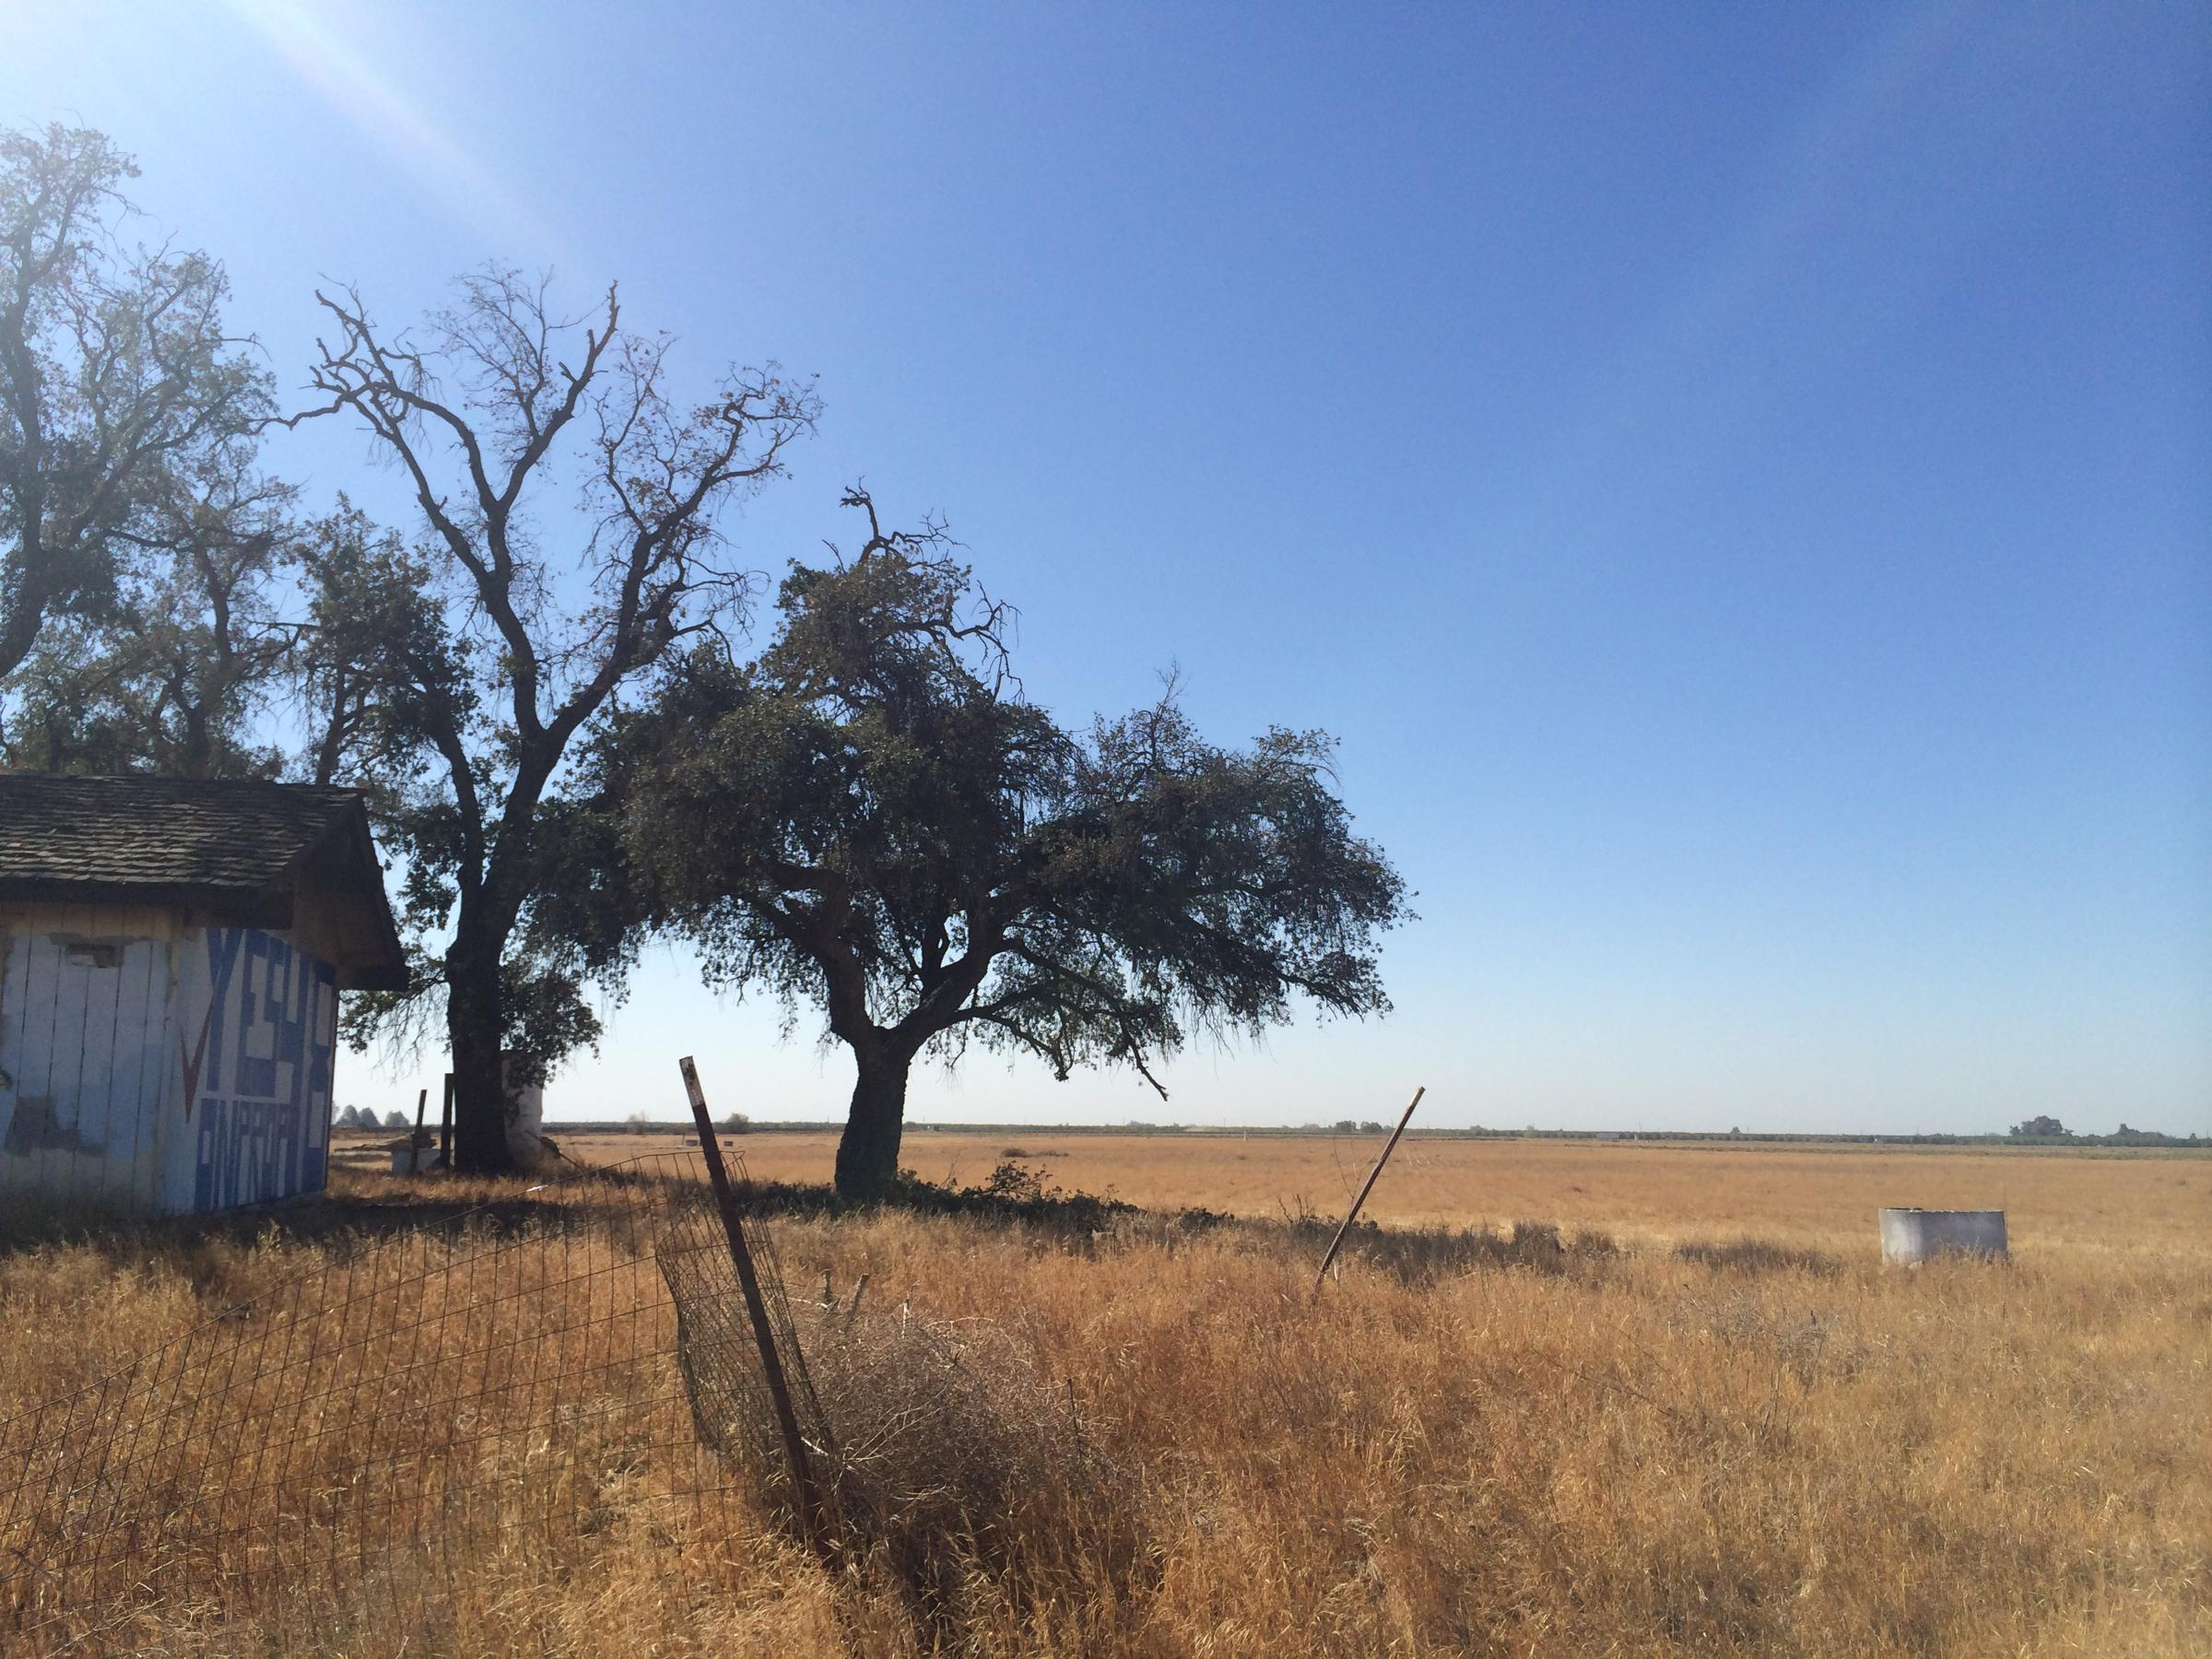 The Site Of Proposed Casino Along Highway 99 In Madera County